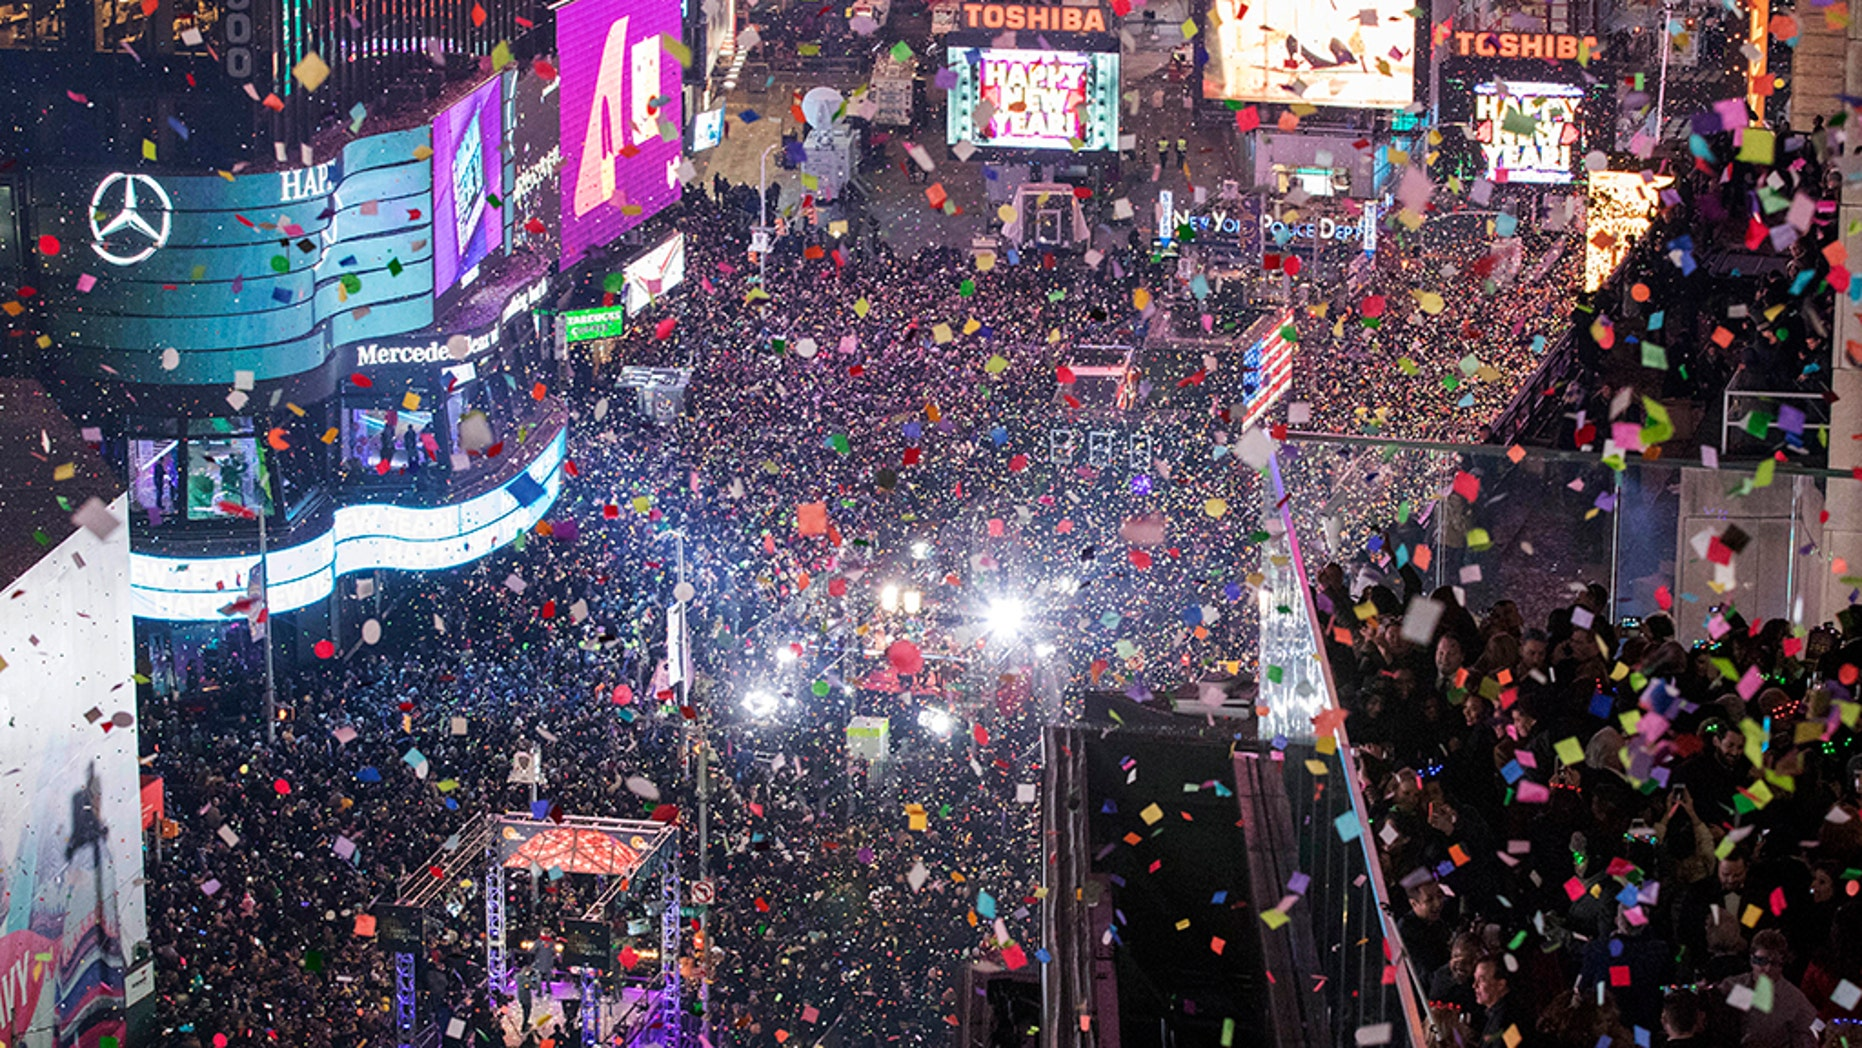 On Jan. 1, 2017 revelers celebrate the new year in New York's Times Square. (AP Photo/Mary Altaffer, File)